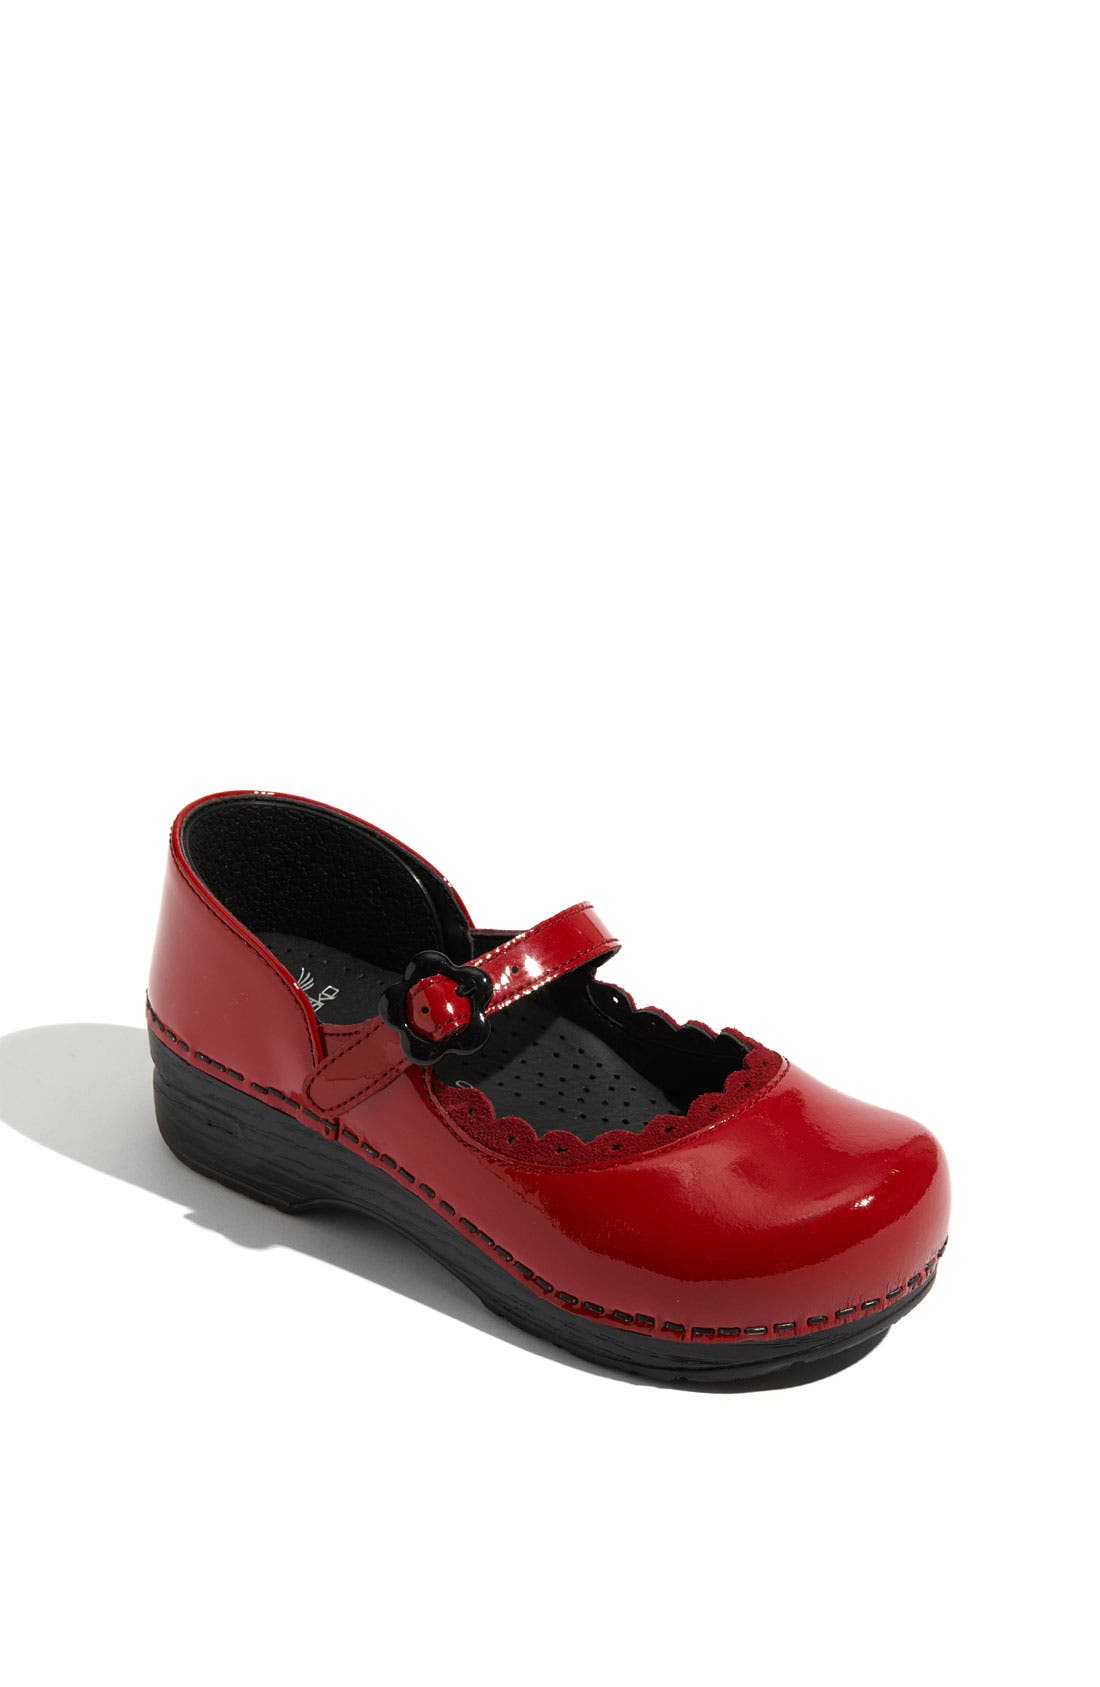 Main Image - Dansko 'Jill' Mary Jane Clog (Toddler, Little Kid & Big Kid)